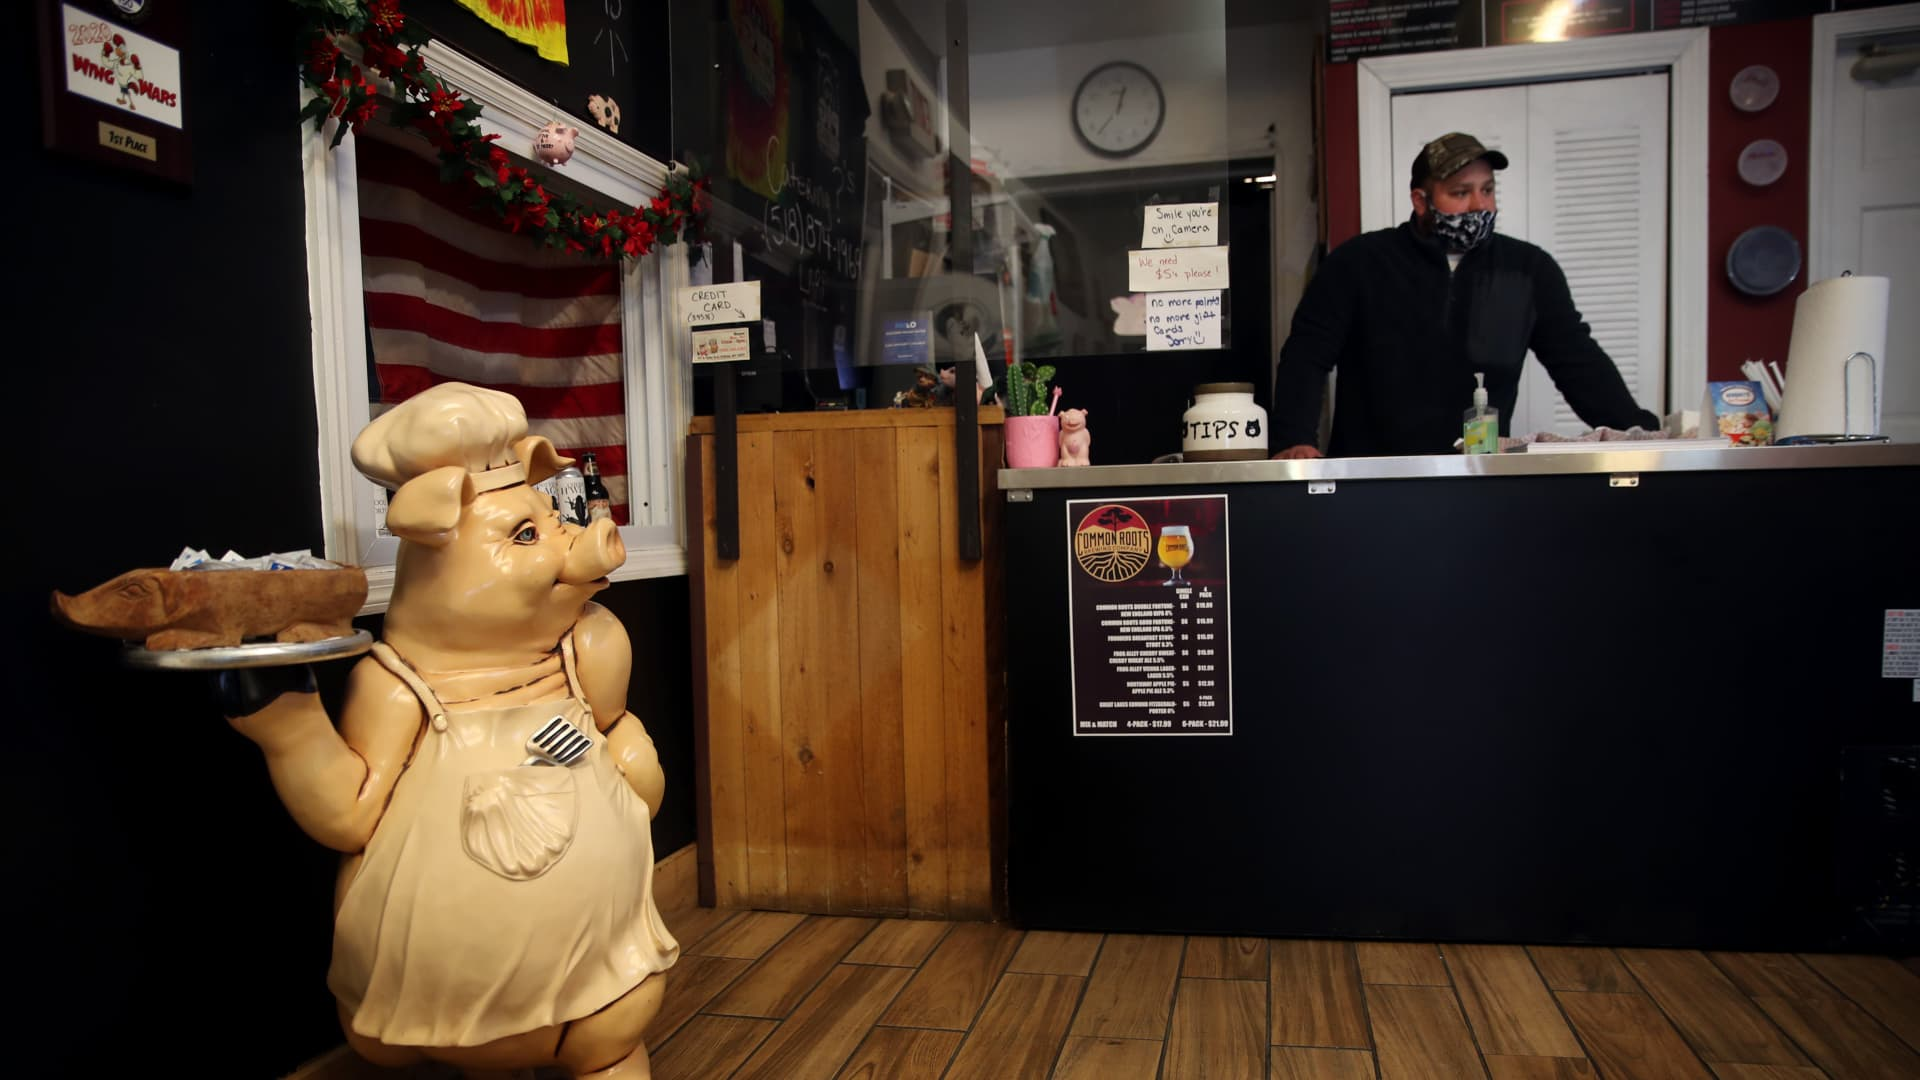 Manager Pat Ryan stands at the counter at the Pig Pit BBQ in Cohoes, NY on December 09, 2020. The pandemic crushed businesses on Boston's Water Street.